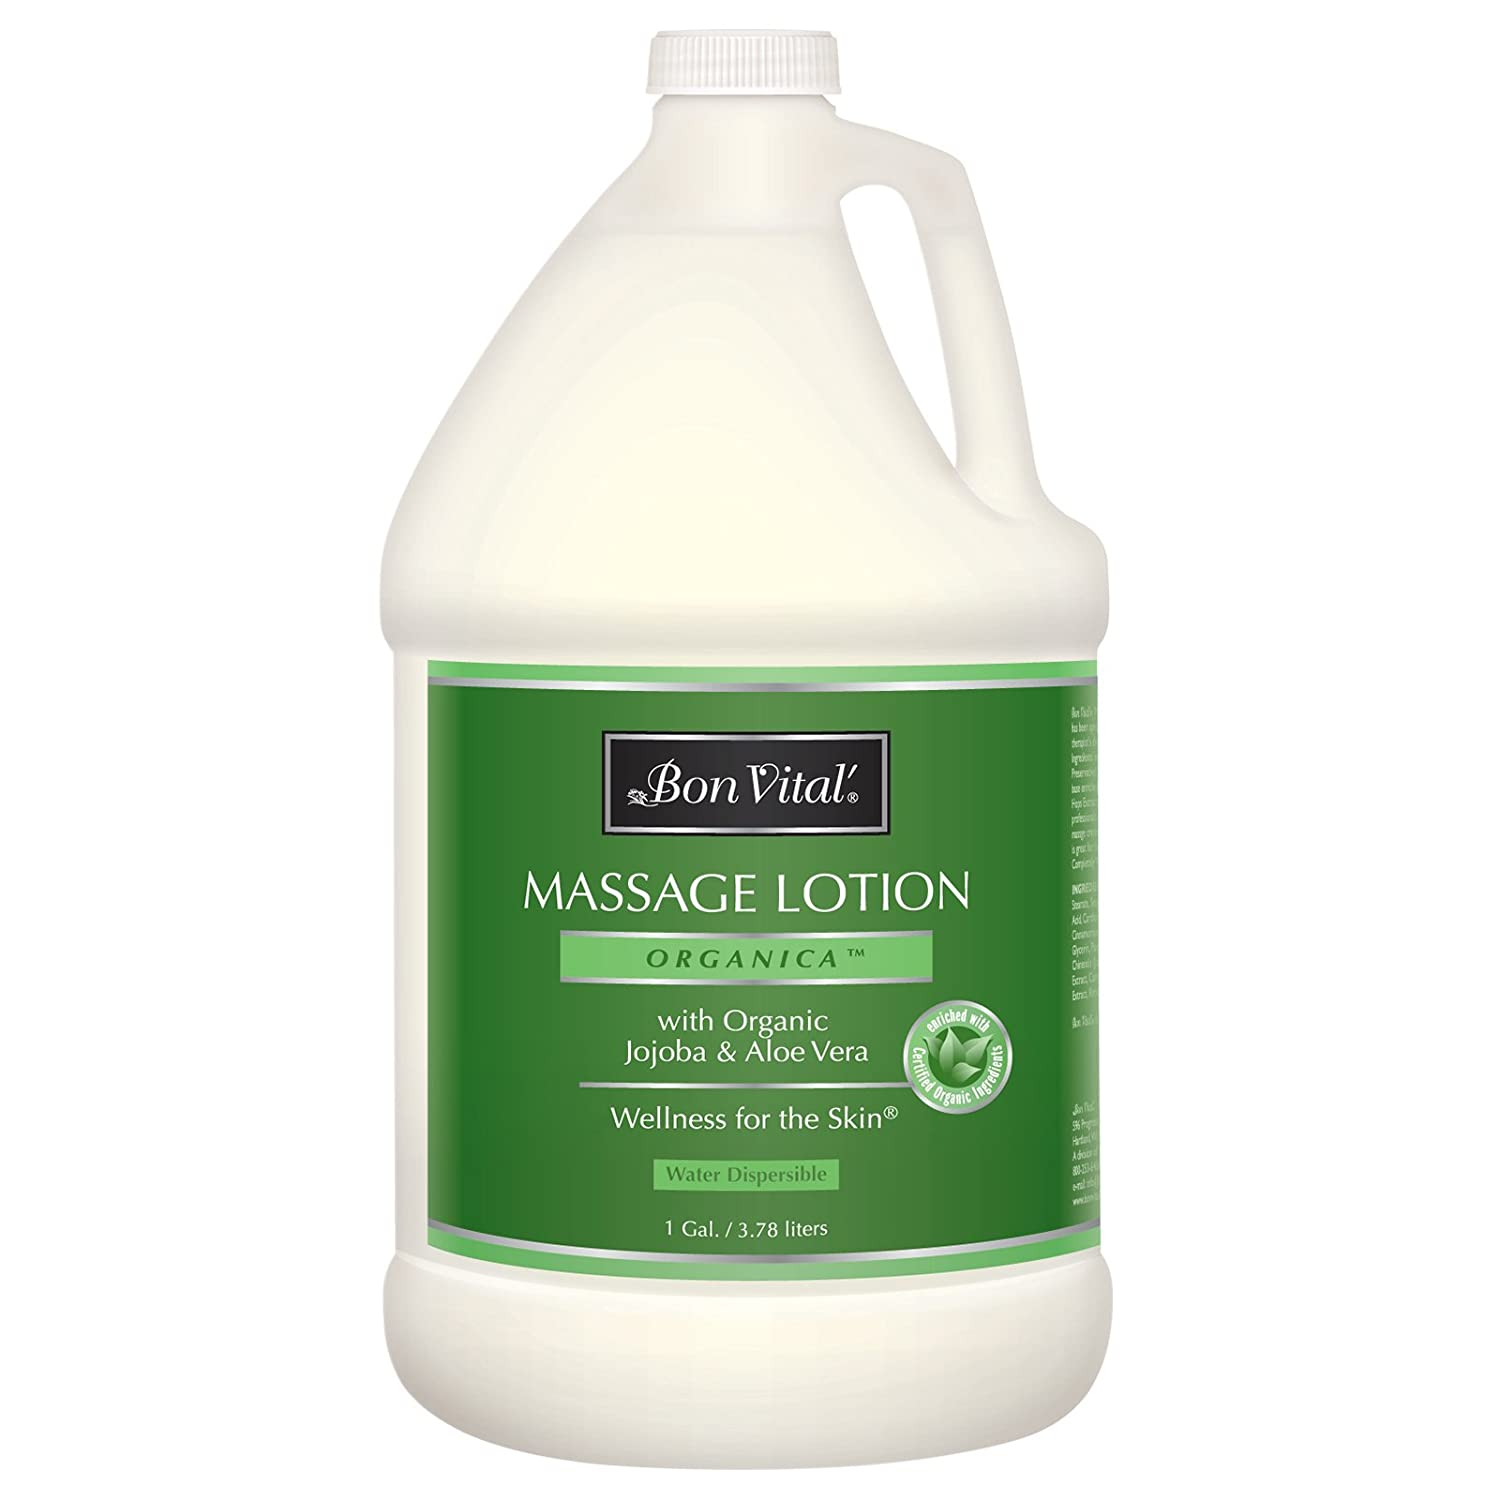 Bon Vital' Organica Massage Lotion Made with Certified Organic Ingredients for an Earth-Friendly & Relaxing Massage, Natural Moisturizer Perfect Lotion for Relaxing Back & Neck Massages, 1 Gal Bottle: Industrial & Scientific